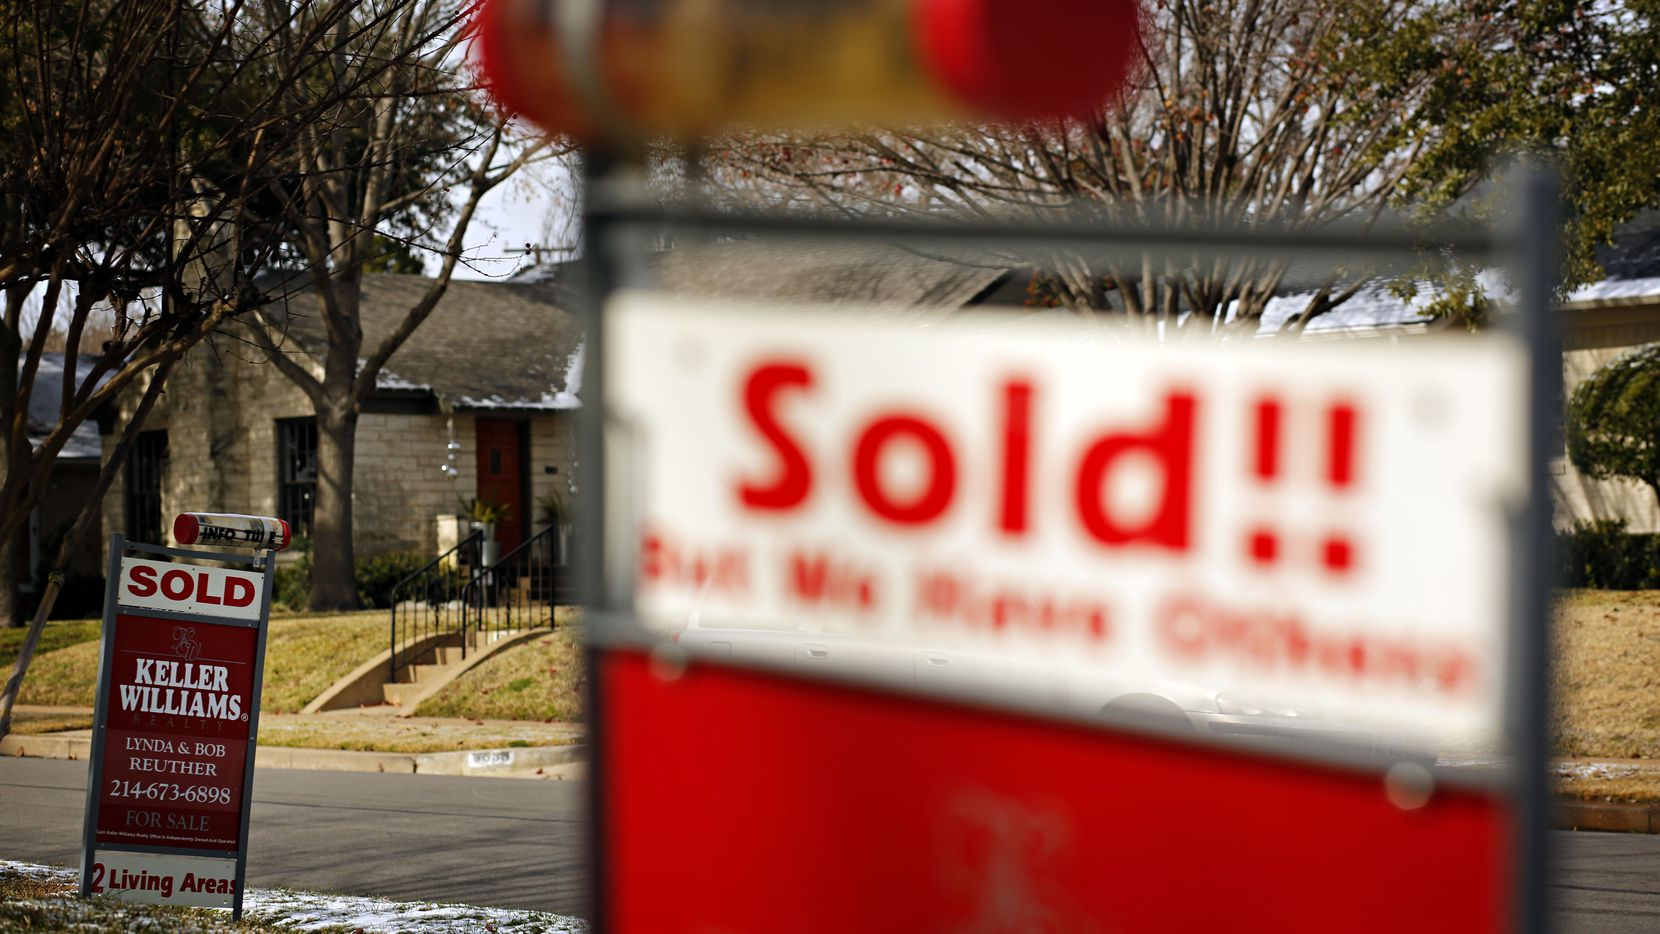 Real estate agents sold more than 102,000 houses in the D-FW area last year.